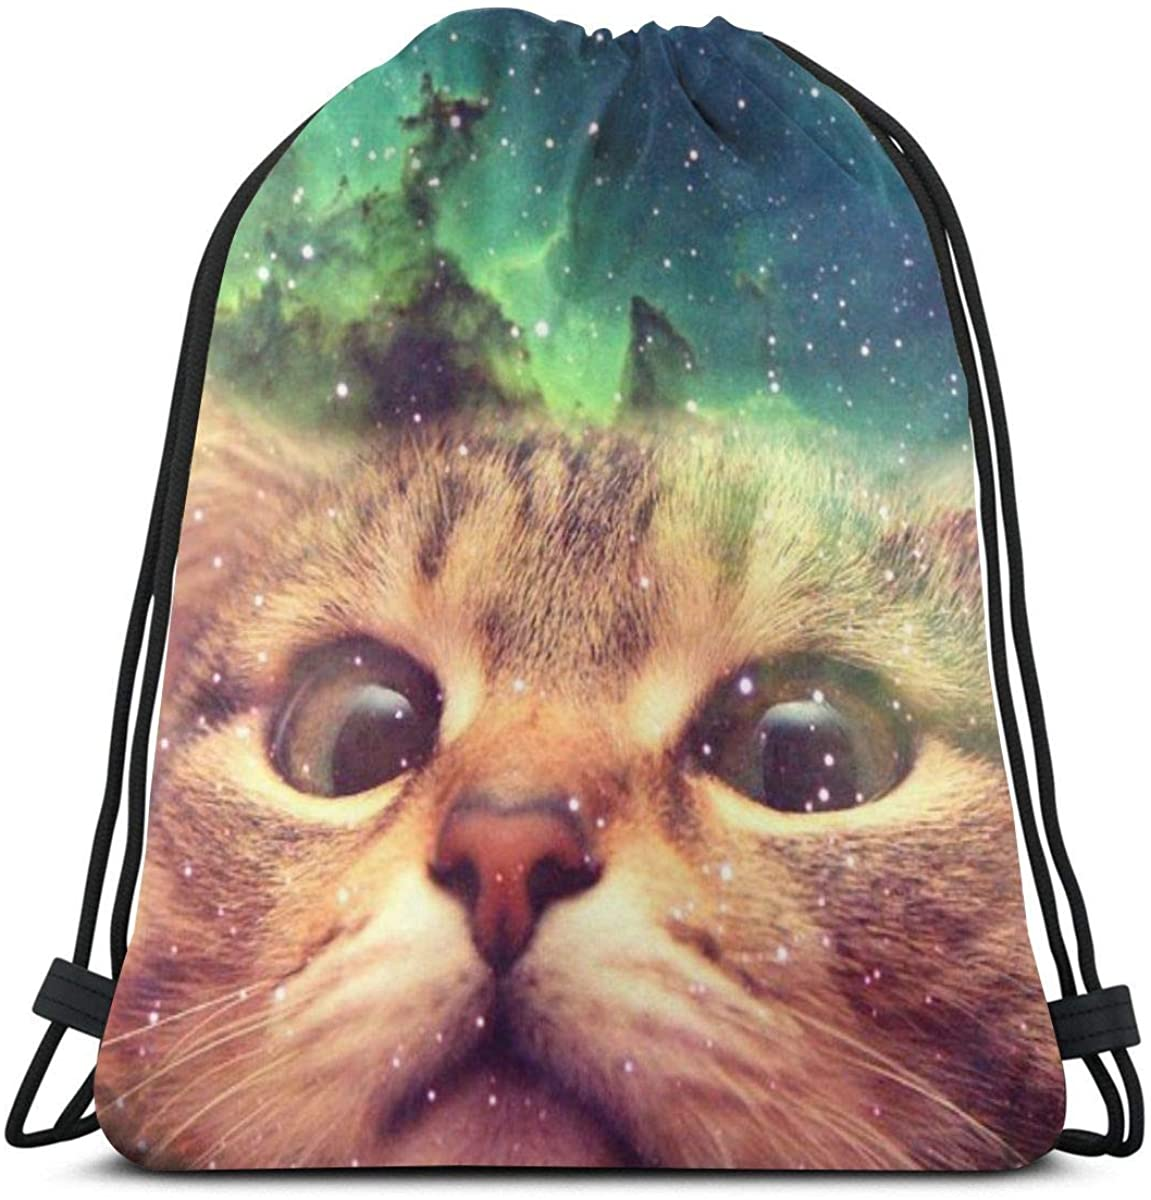 Drawstring Bags Cat Space Galaxy Backpack Pull String Bags Bulk Sports Storage Gym For Children Large Baseball Rucksack